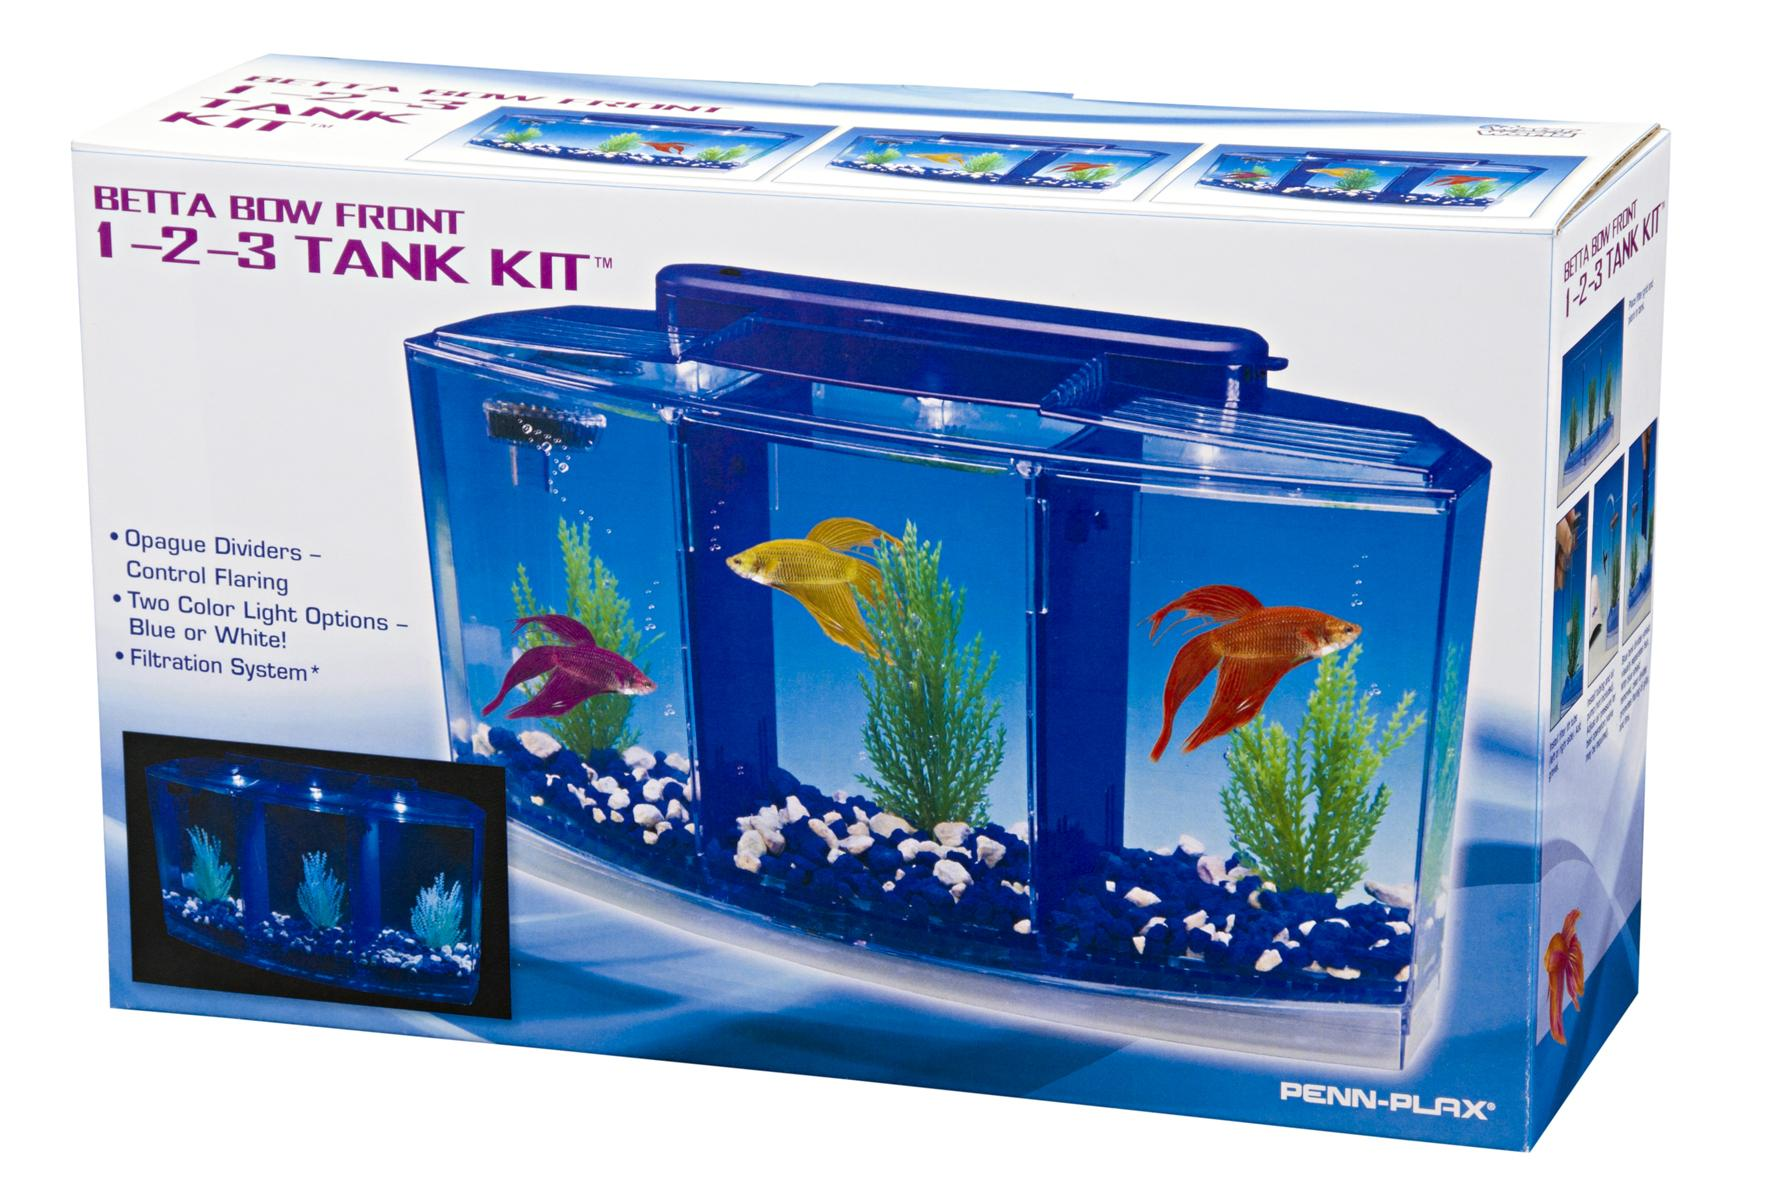 Penn plax deluxe triple betta bow aquarium tank 0 7 for Betta fish tanks amazon